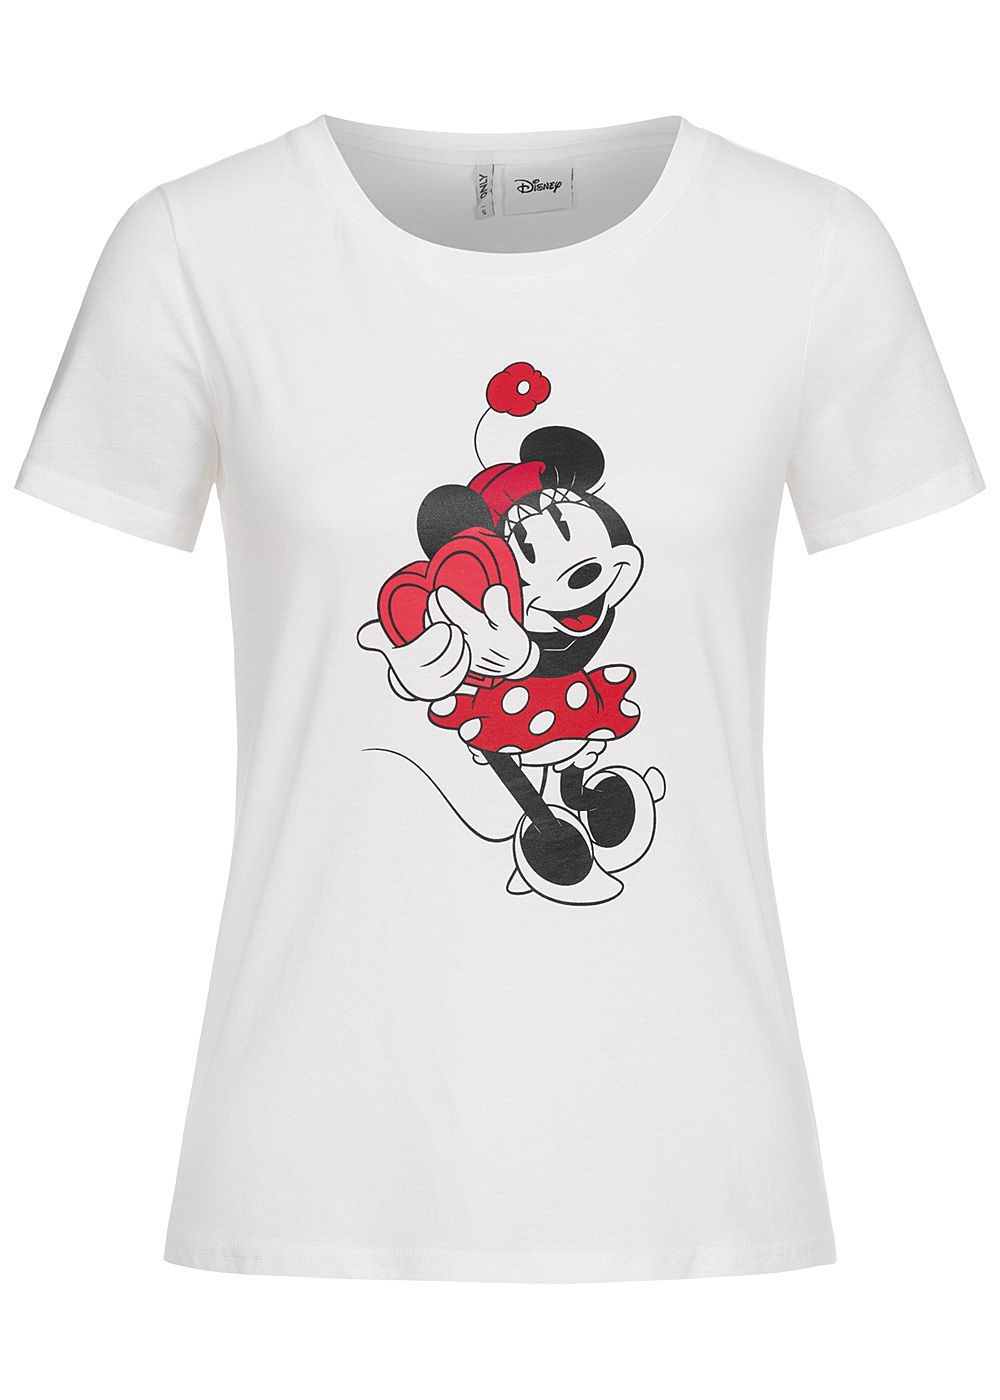 ONLY Damen T-Shirt Minnie Mouse Print bright weiss - Art.-Nr.: 20052616